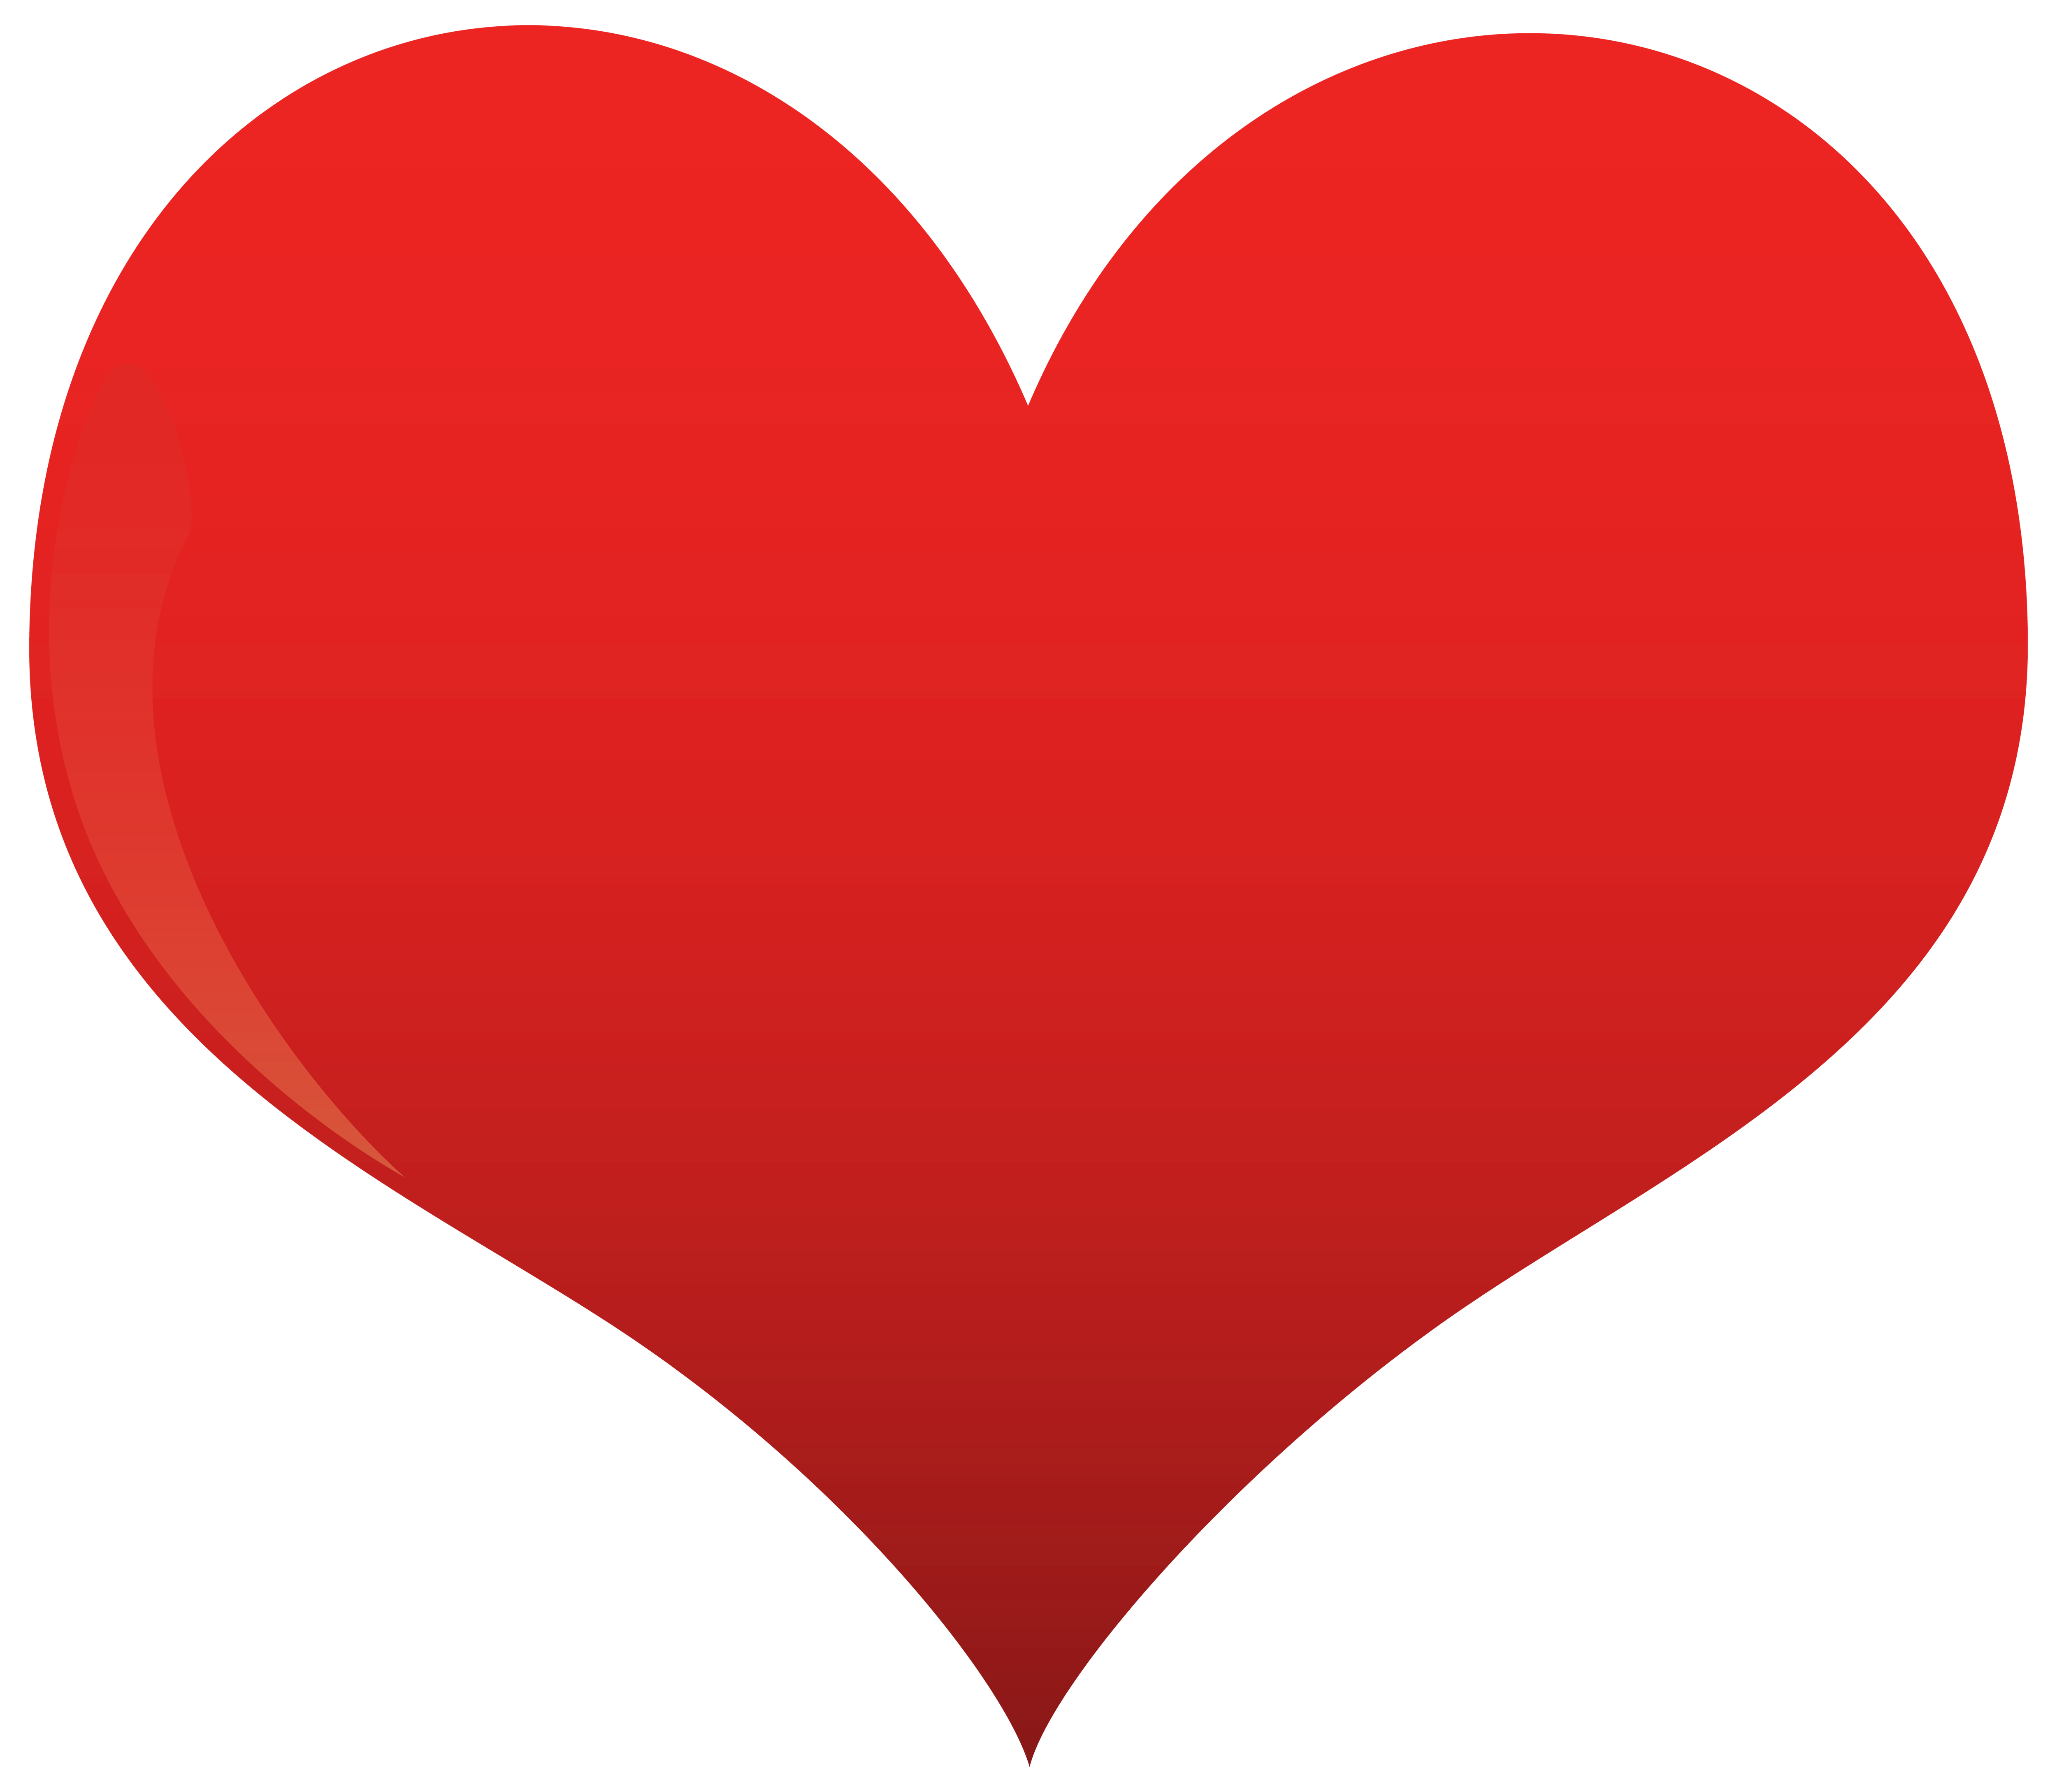 Classic heart png best. Valentine clipart photo booth